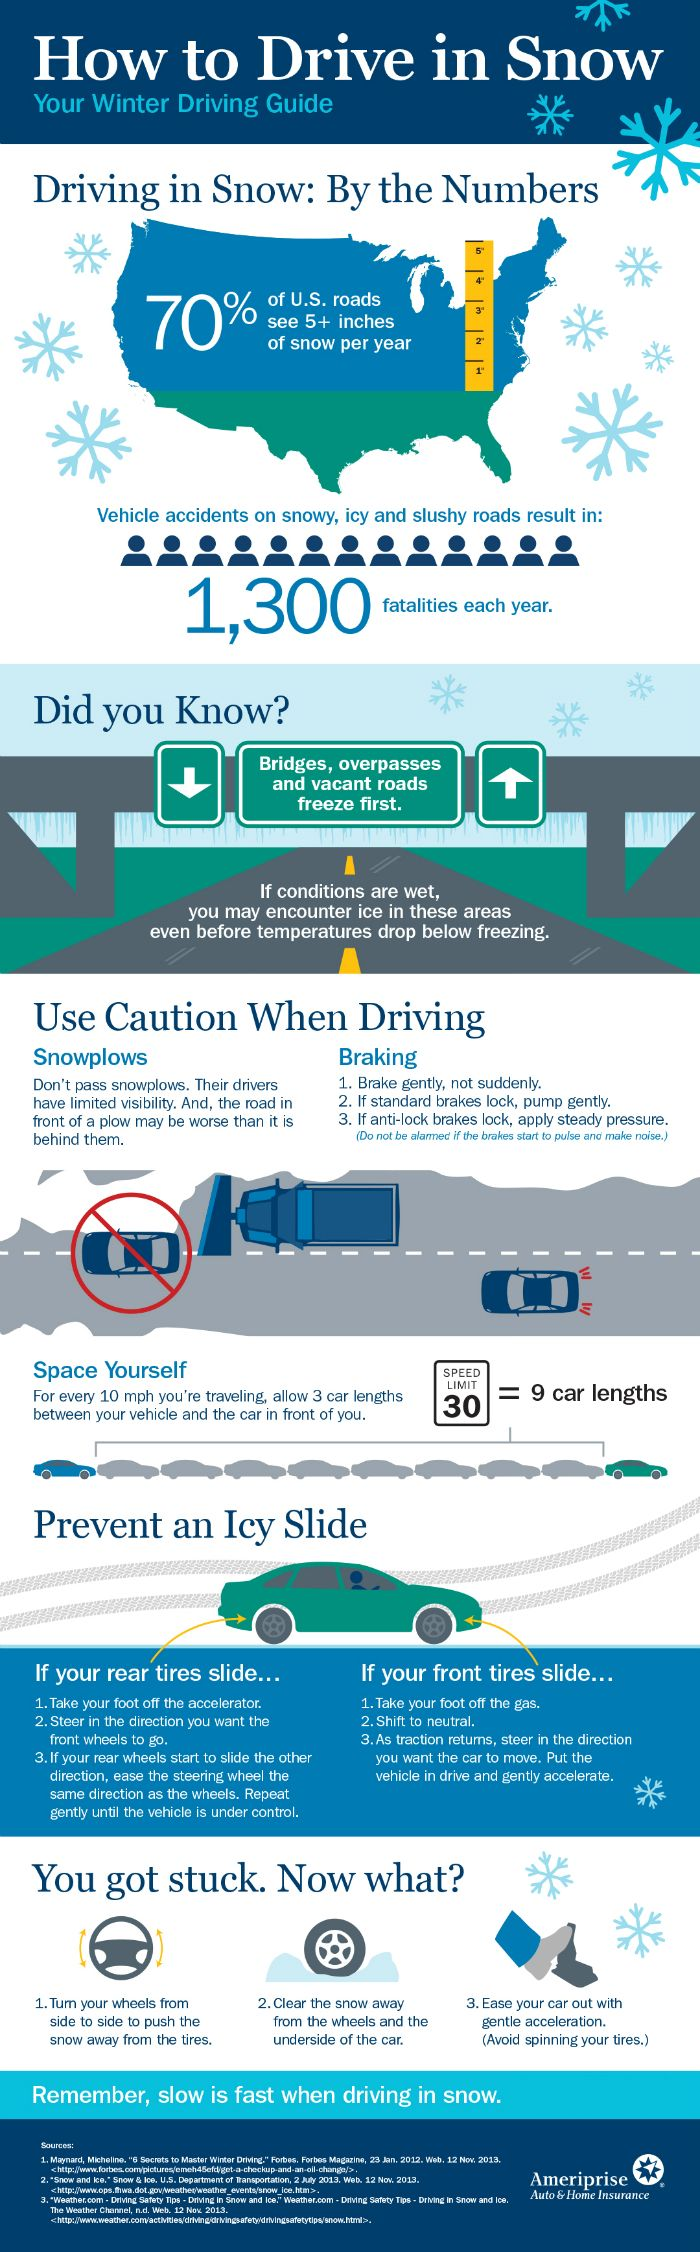 How to drive in snow infographic